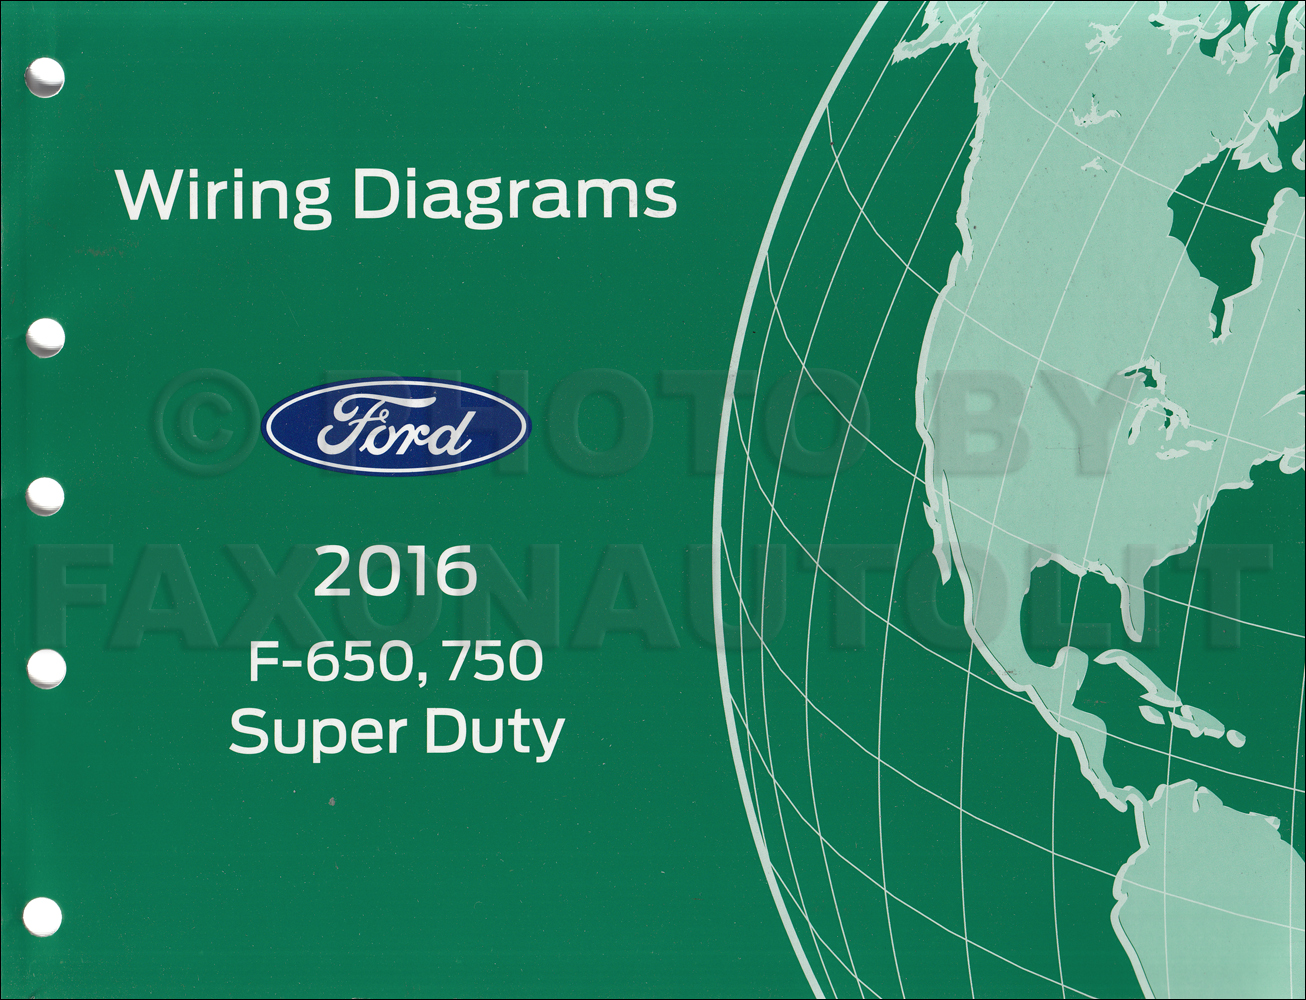 F750 Wiring Diagram Ford F500 2016 F 650 And 750 Super Duty Truck Manual2016